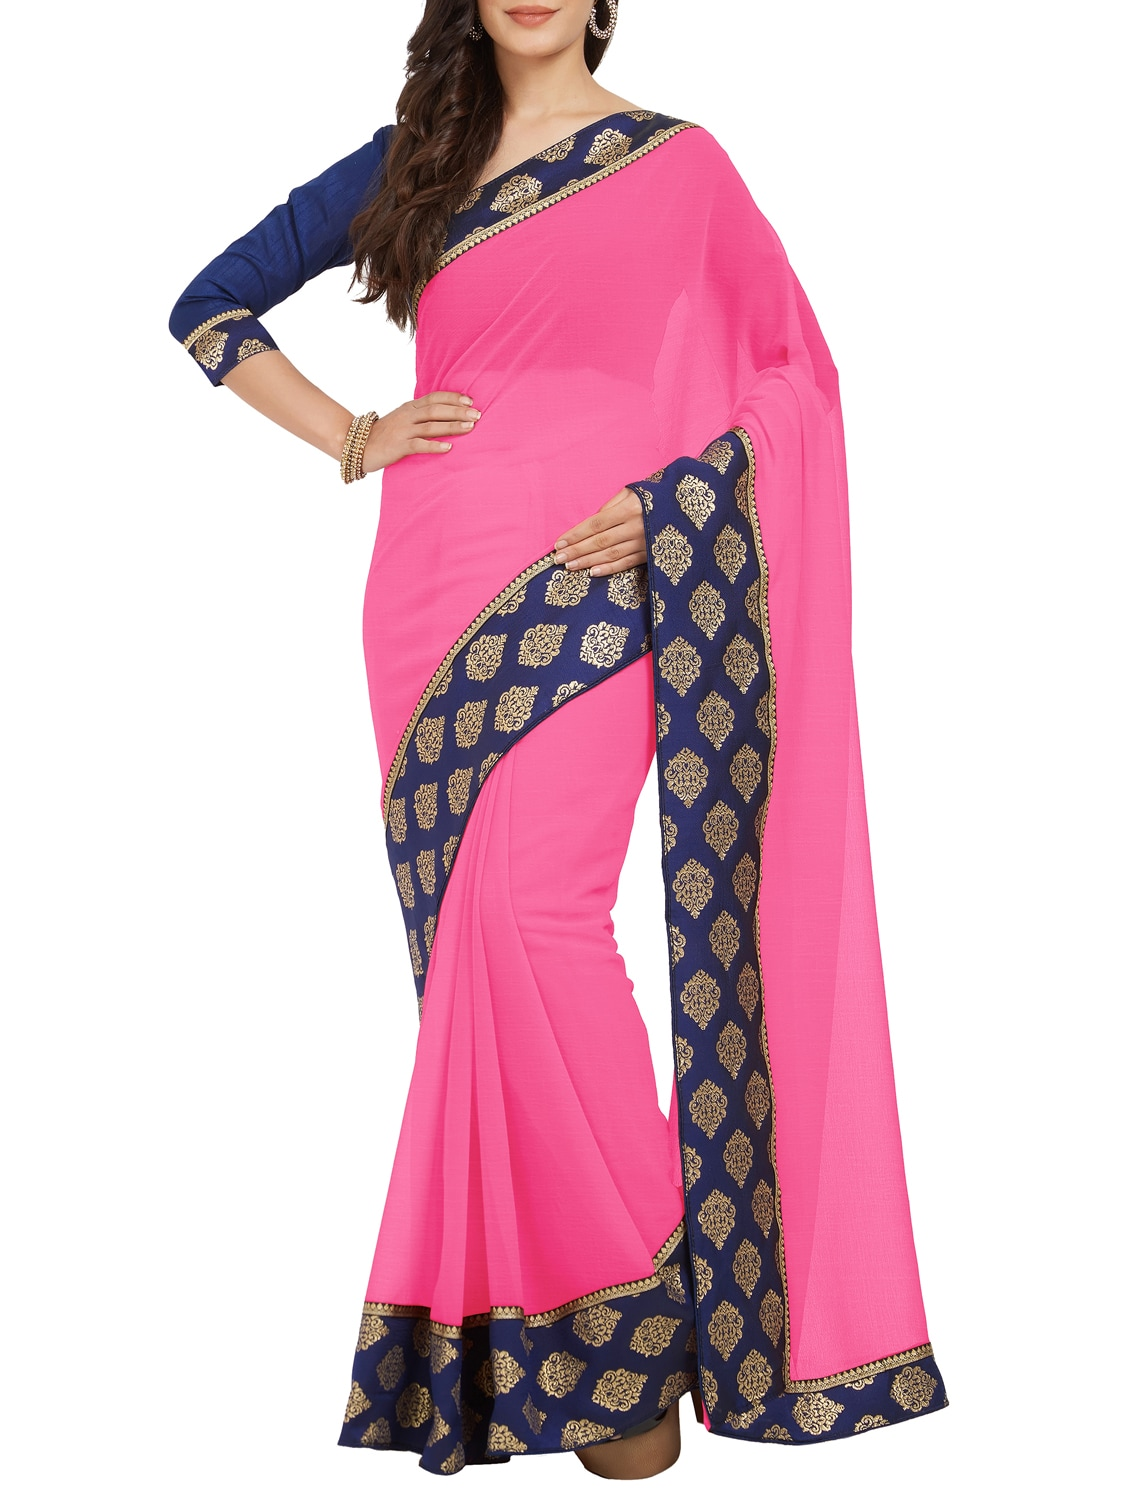 bfc8449d46ac1b Pink Saree Blouse Contrast - Foto Blouse and Pocket Fensterdicht.Com